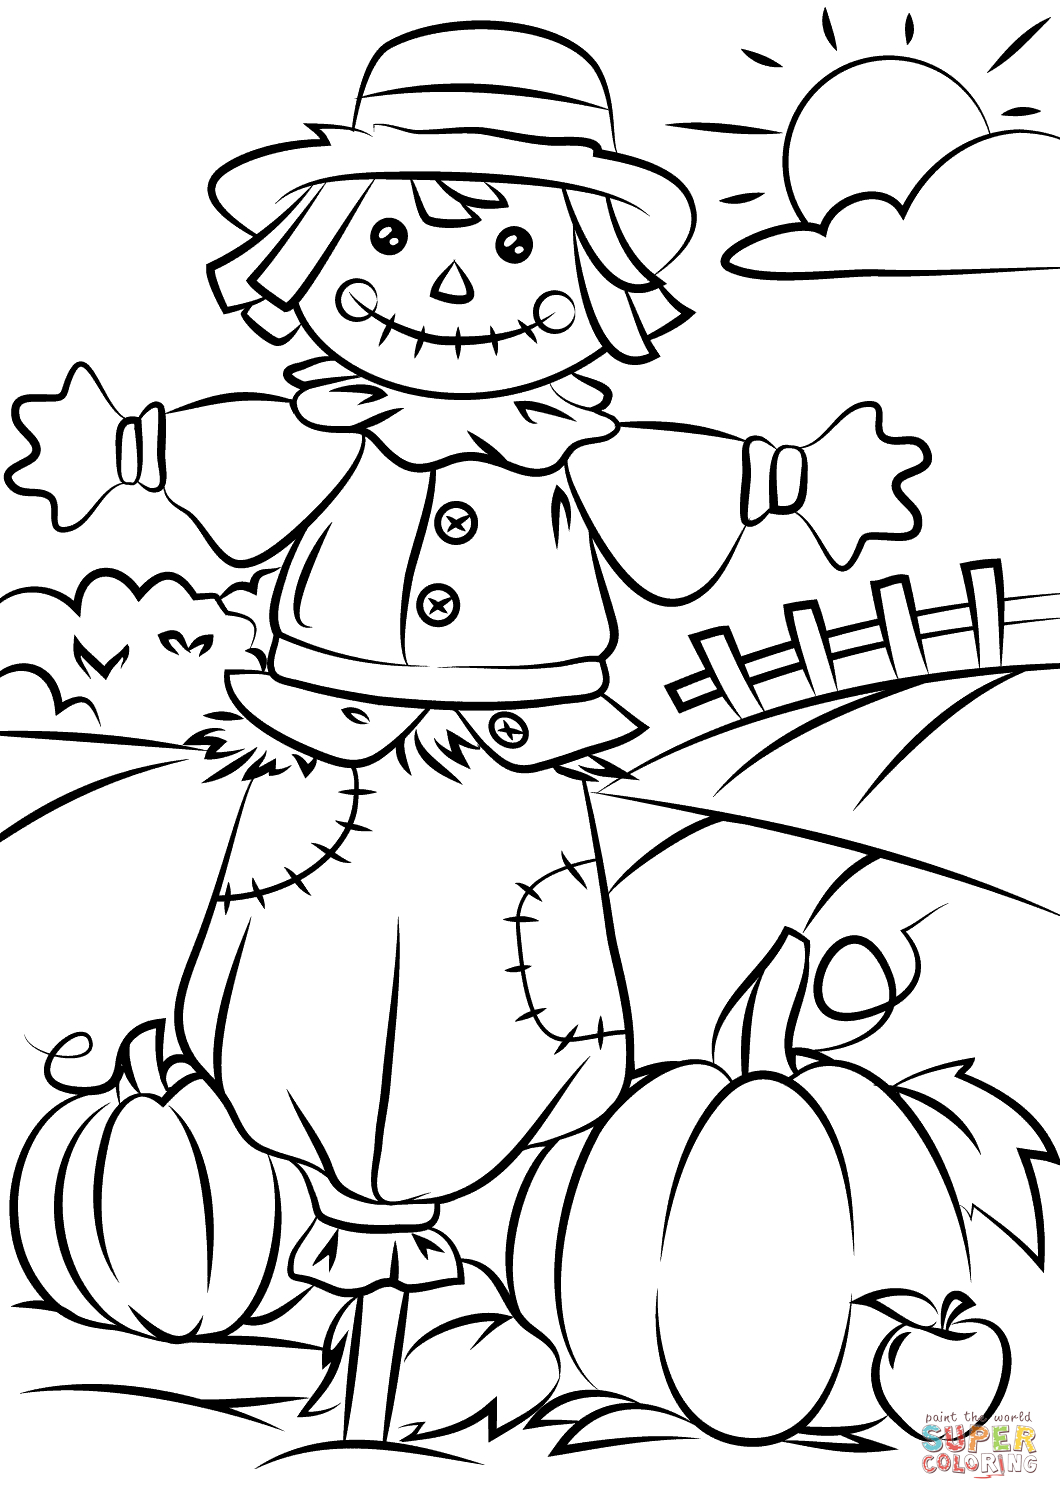 Autumn Scene With Scarecrow Coloring Page | Free Printable Coloring - Free Printable Leaf Coloring Pages